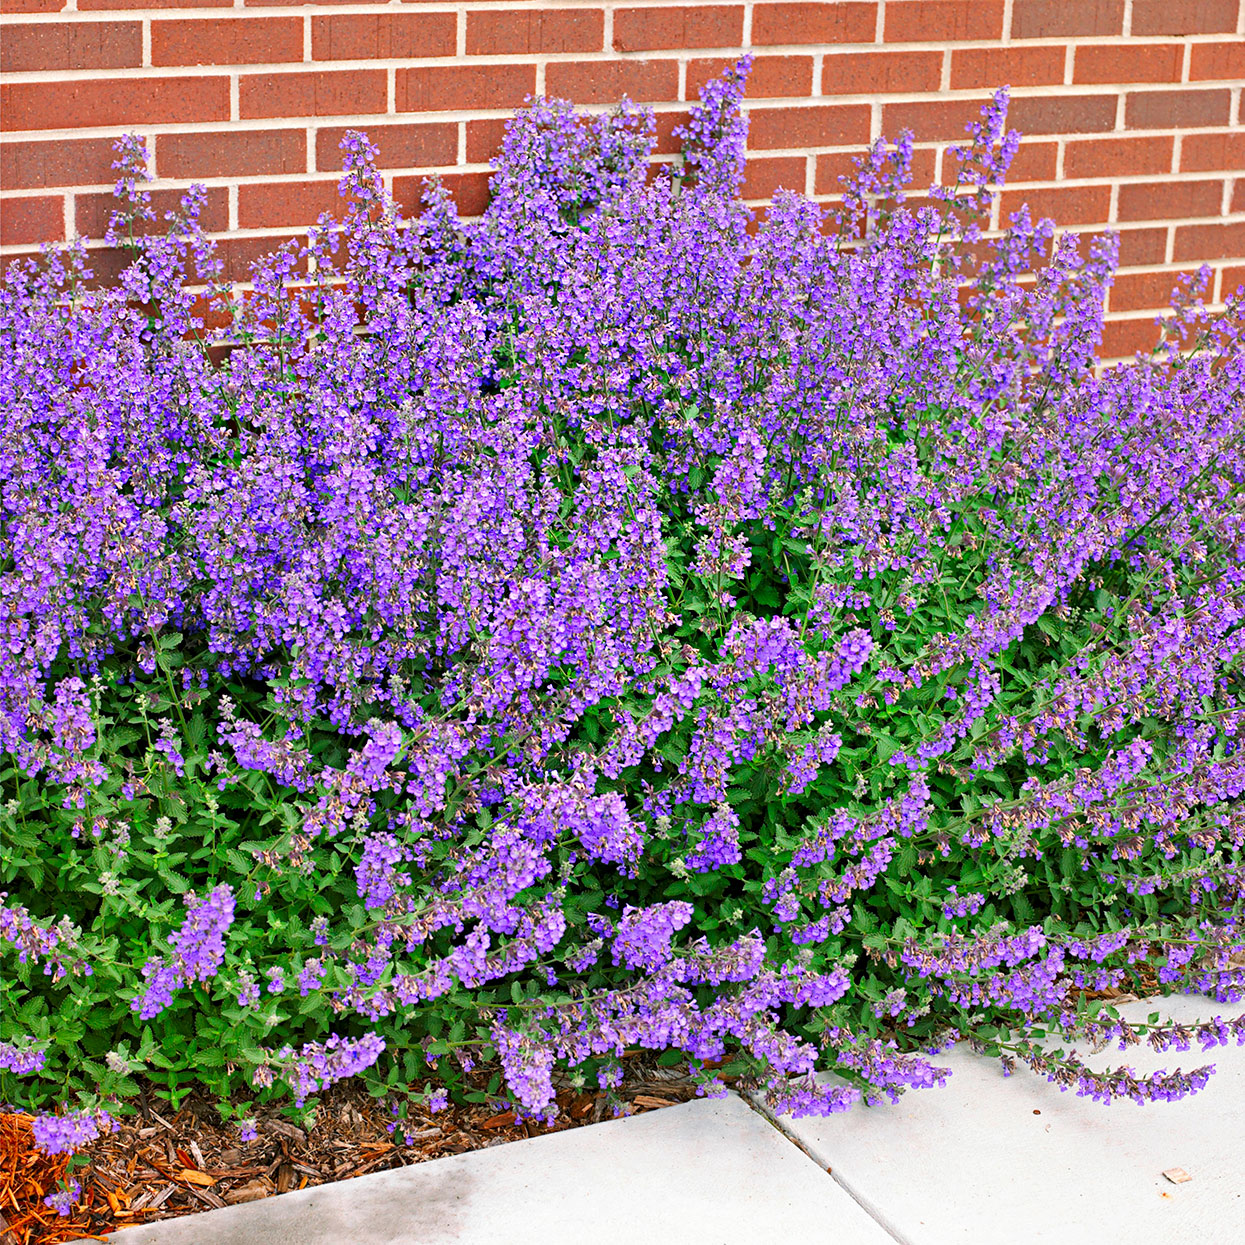 purple spikes of walkers low catmint